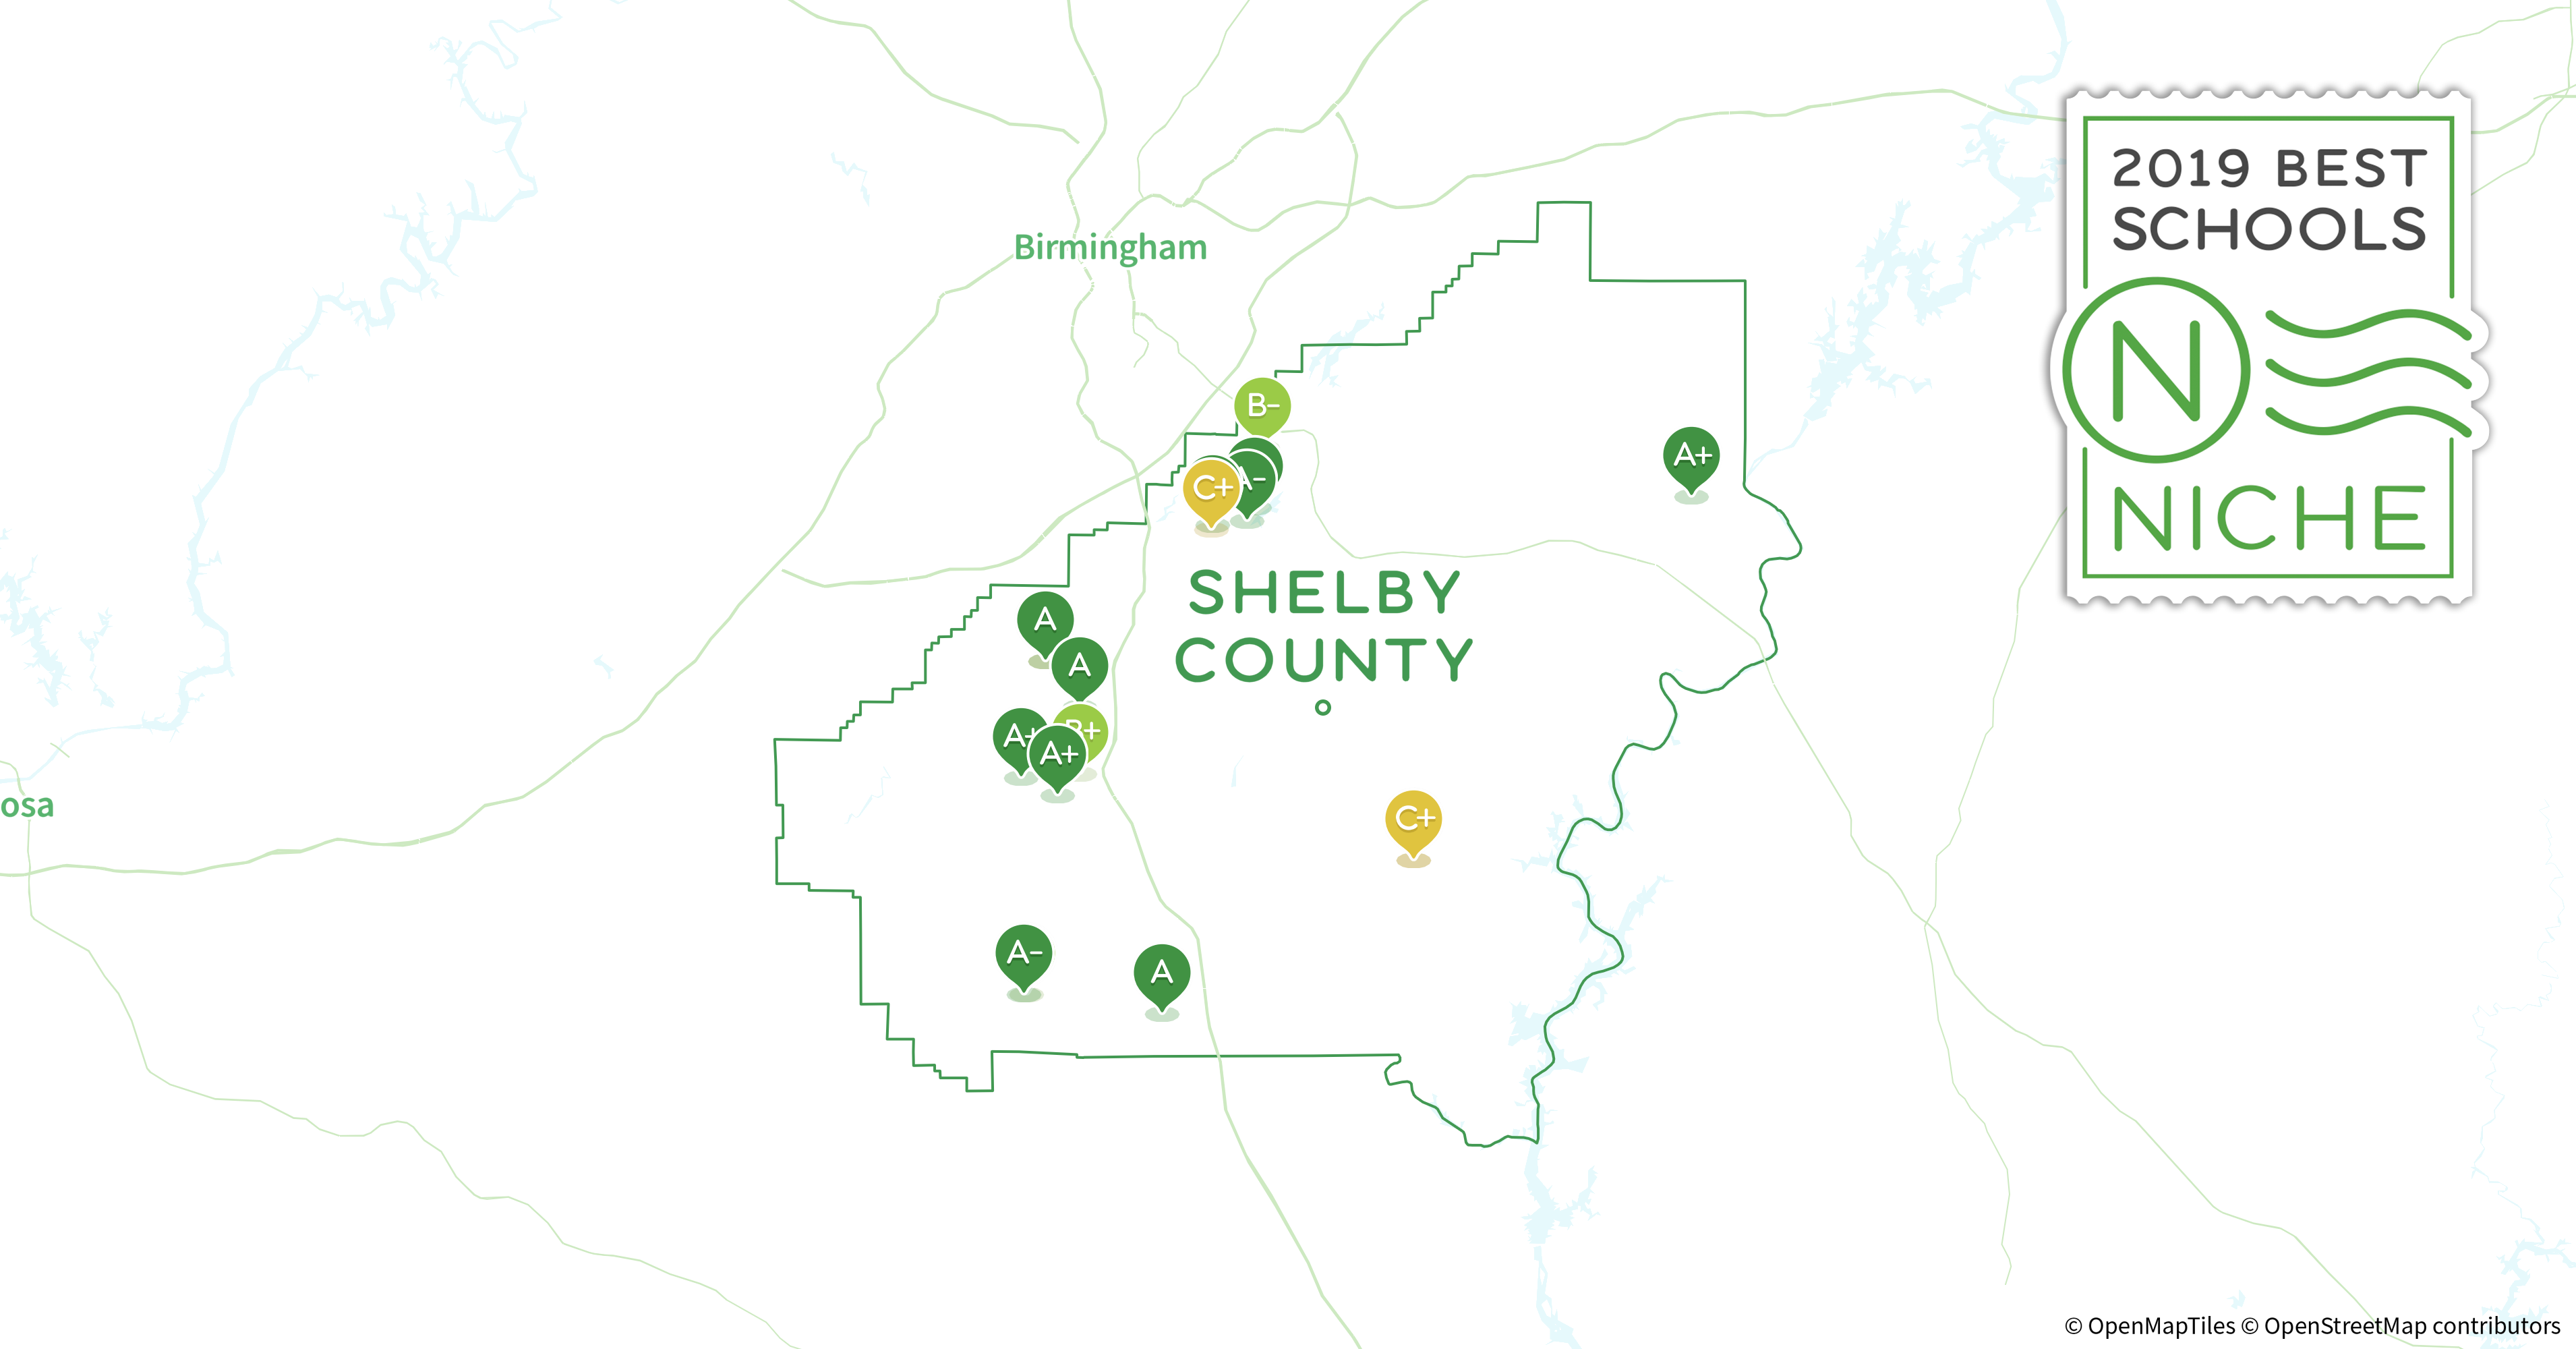 2019 Largest High s in Shelby County, AL - Niche on arlington alabama map, perry county alabama map, walker county alabama map, lee county alabama map, birmingham alabama map, black warrior river alabama map, pelham alabama map, columbiana alabama map, blount county alabama map, butler co alabama map, miami county ohio road map, shelby al map, montgomery alabama map, meadowbrook alabama map, madison county alabama map, hayneville alabama map, missouri alabama map, chelsea alabama map, southside alabama map, bibb county alabama map,